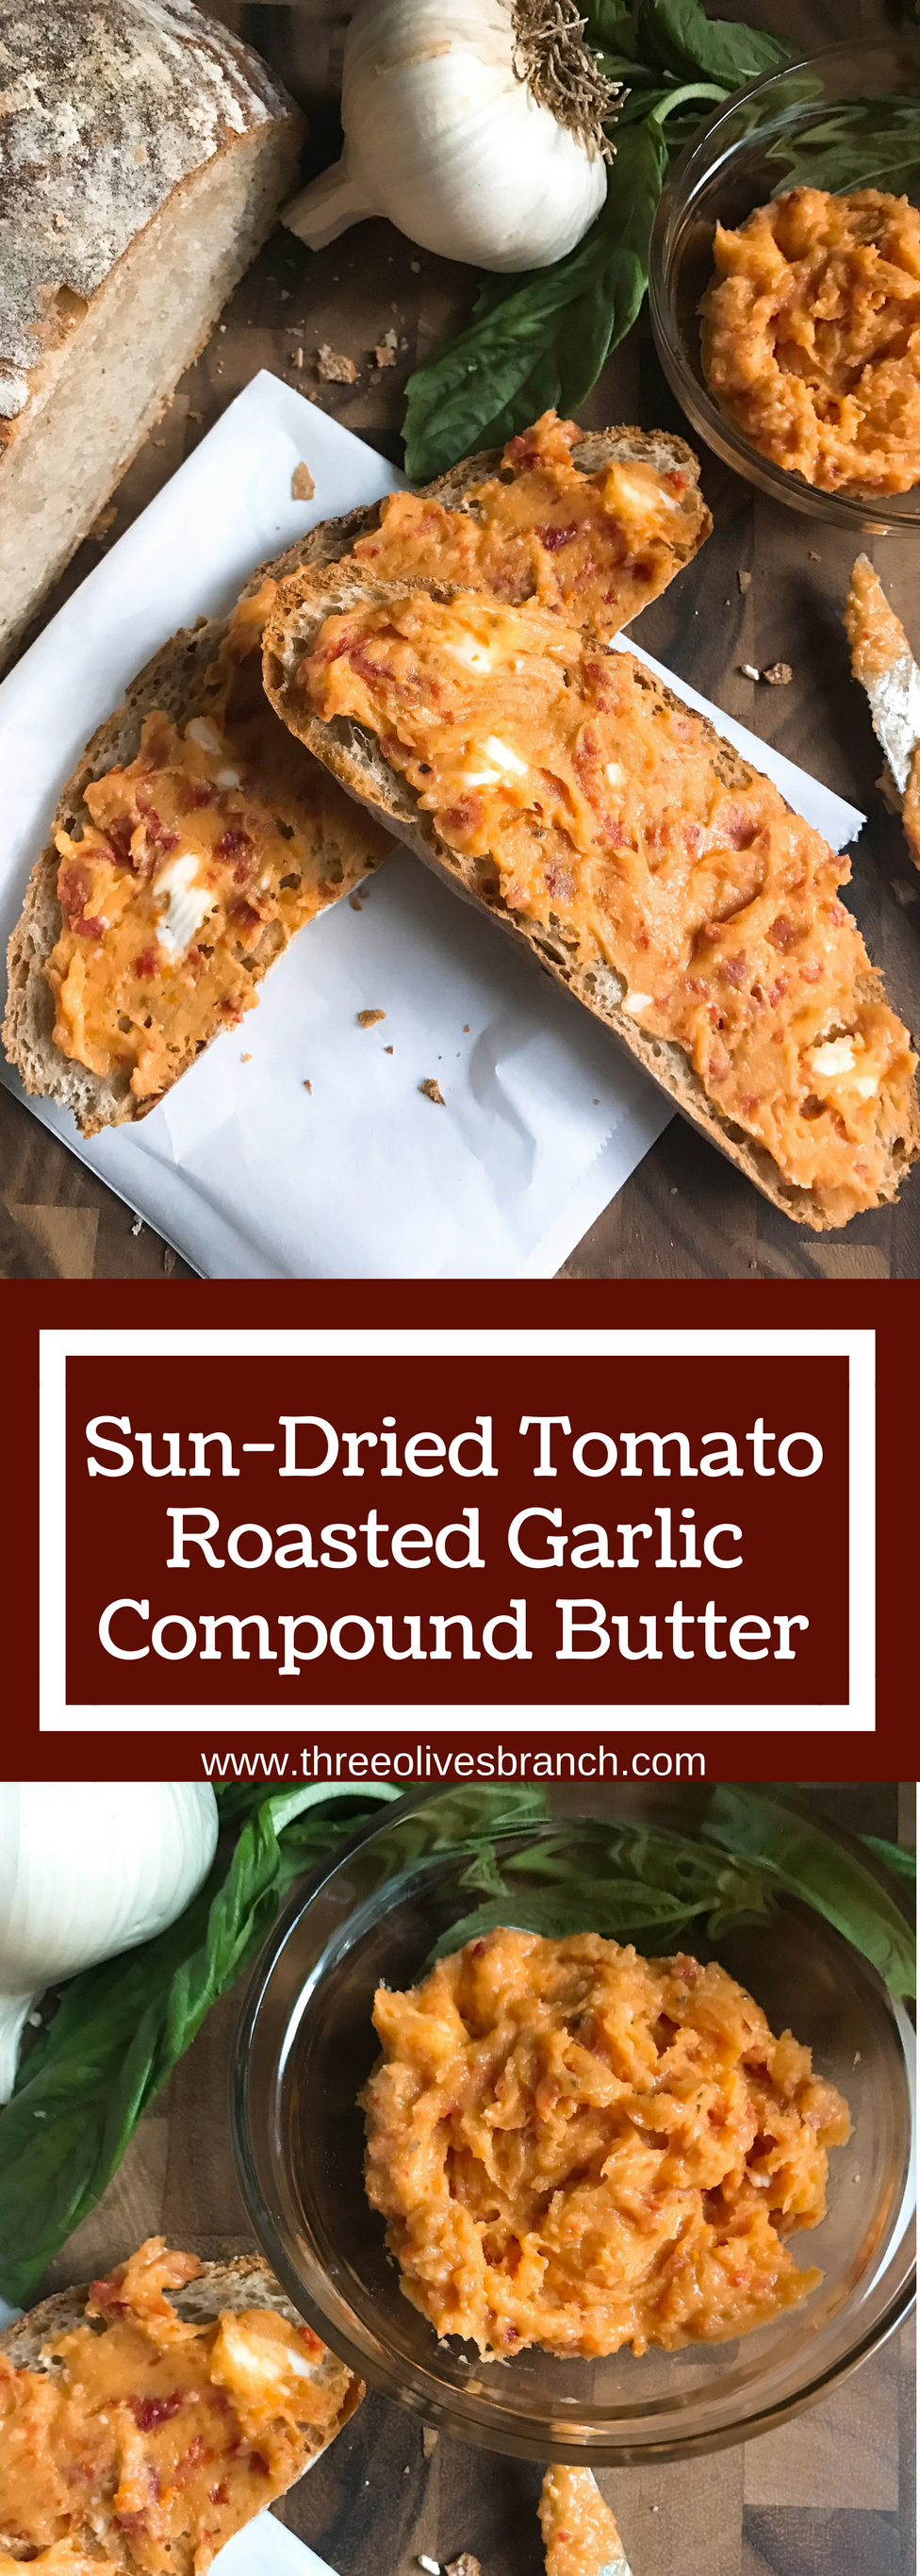 ... Tomato Roasted Garlic Compound Butter | Three Olives Branch | www